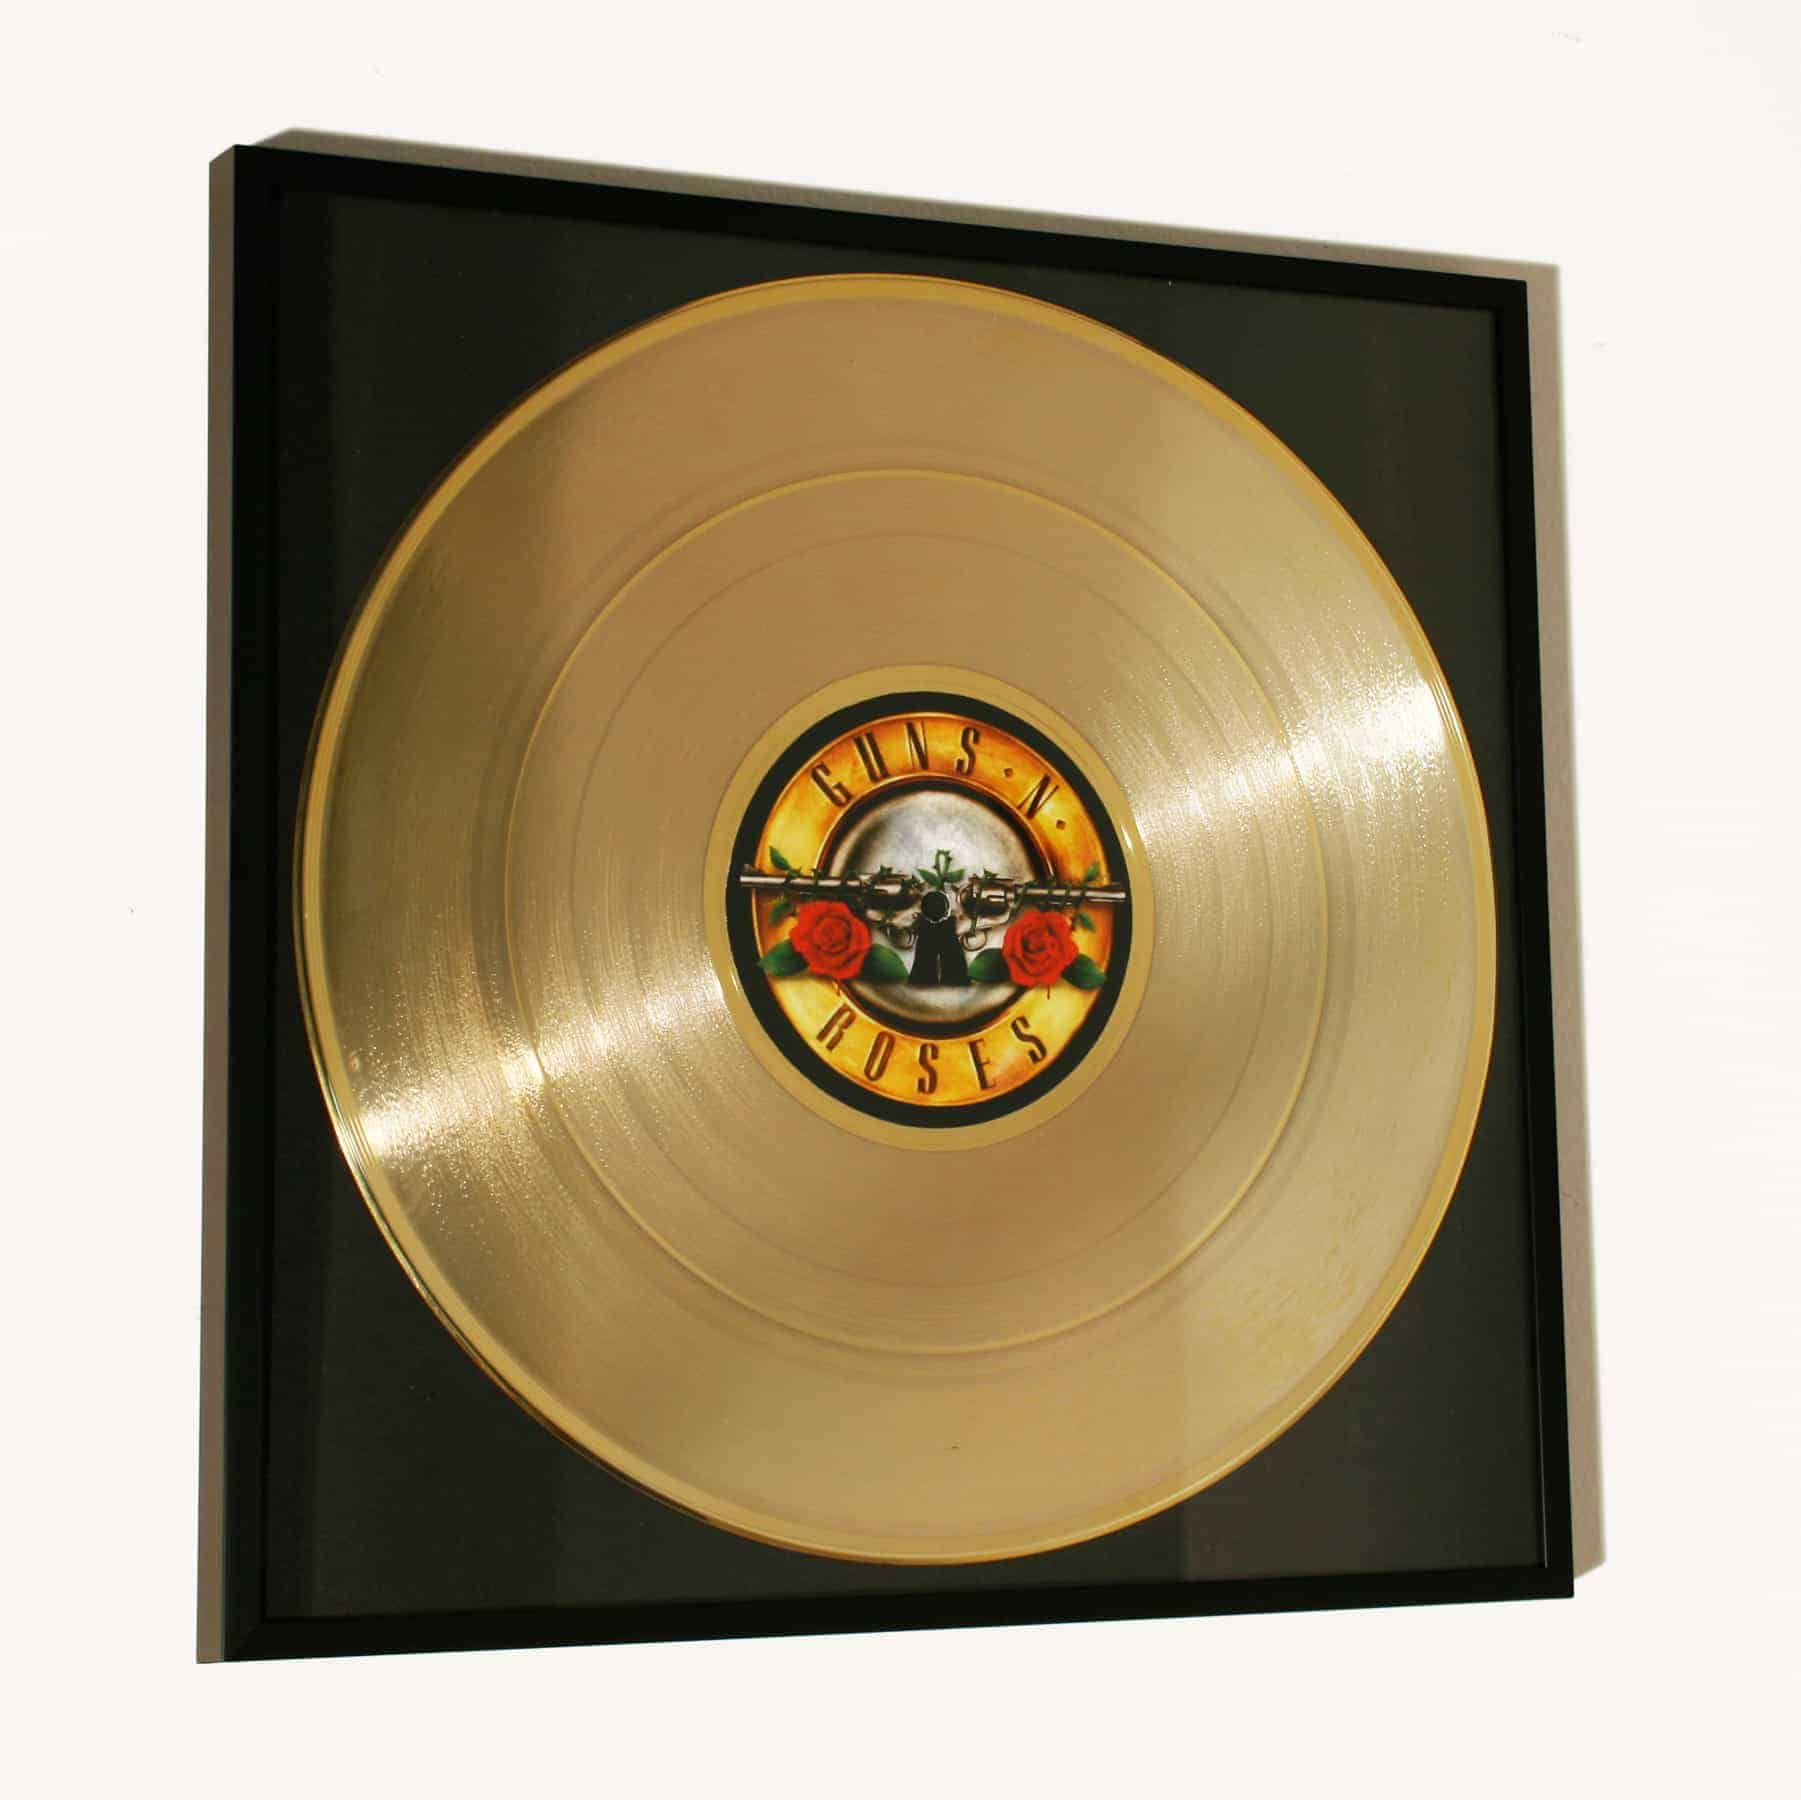 GUNS N ROSES – APPETITE FOR DISTRUCTION: FRAMED GOLD PLATED VINYL RECORD